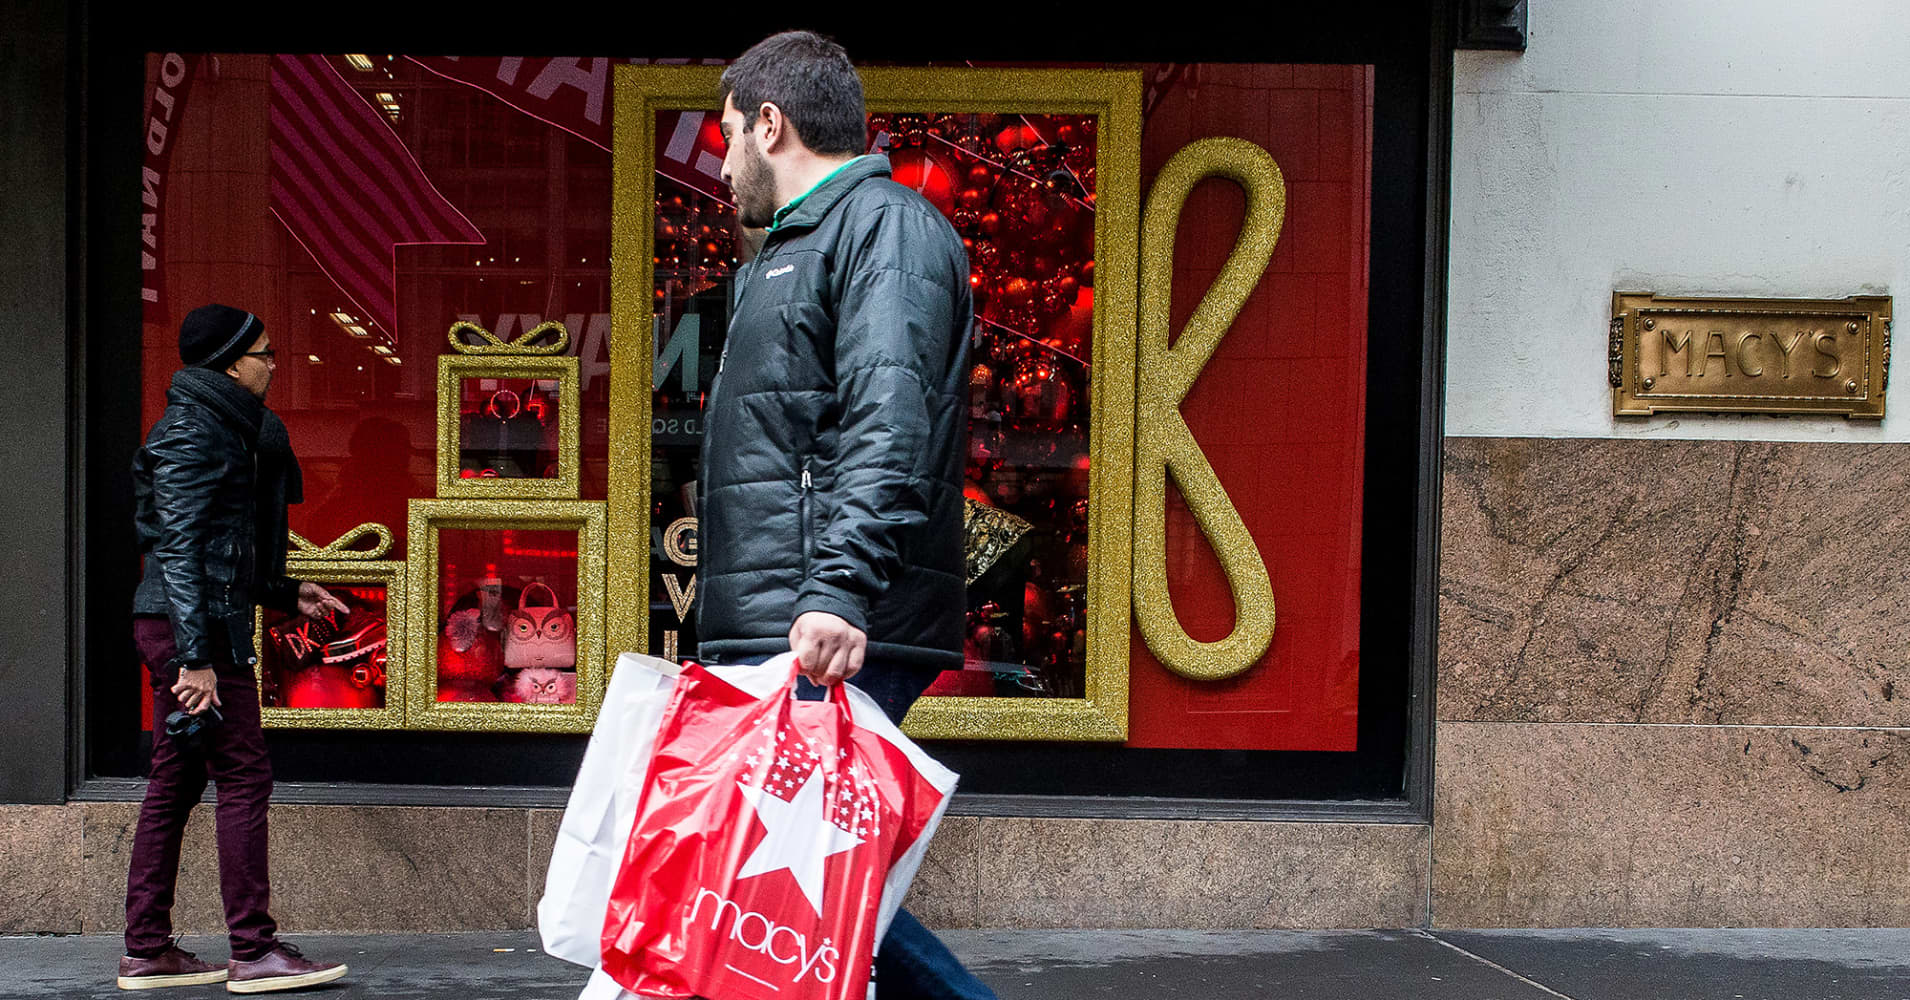 A pedestrian carries a Macy's Inc. shopping bag while walking past a store in New York.